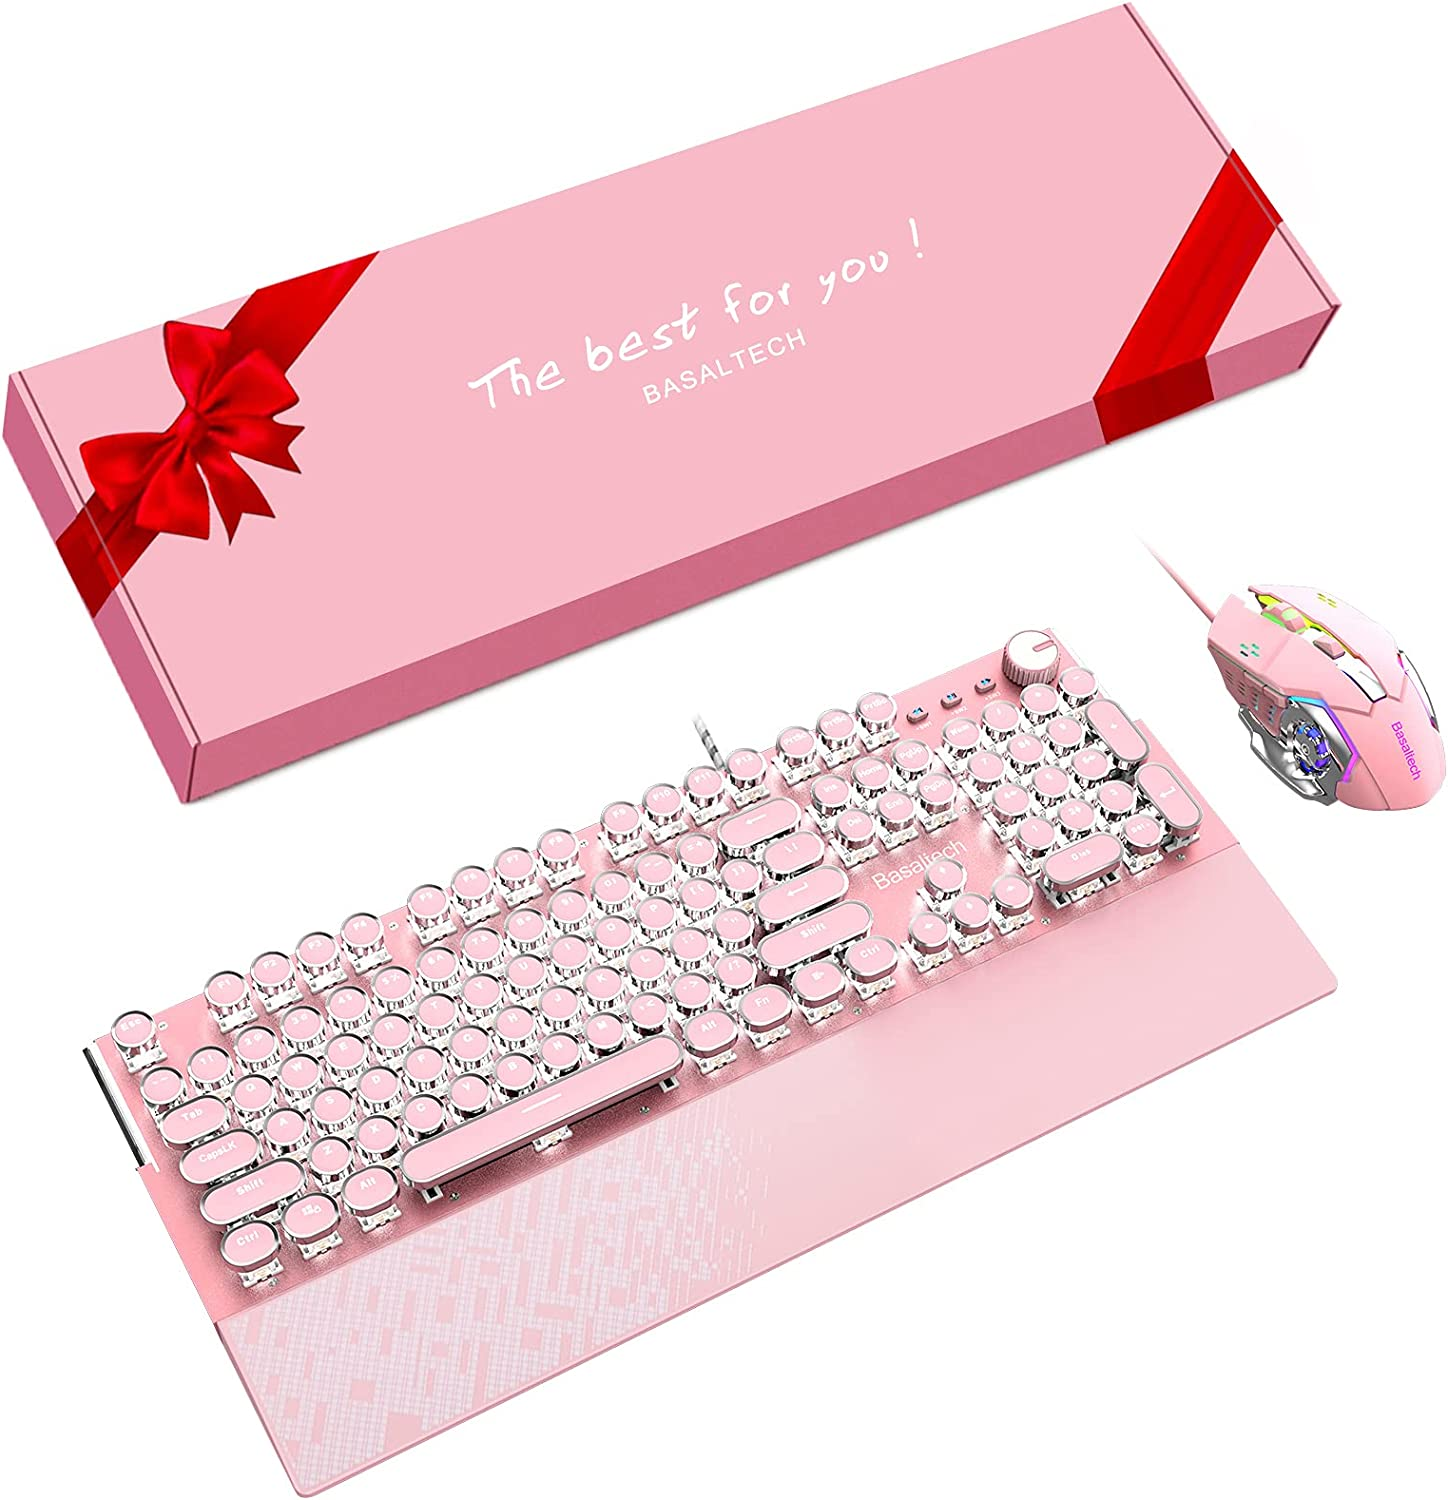 Basaltech 3 IN 1 Pink Gaming Keyboard With White LED Backlight, Magnetic Removable Wrist Rest With Large Table Mat Gift Combo, Retro Keyboard With 3200DPI Game Mouse Wired Keyboard for Game and Office